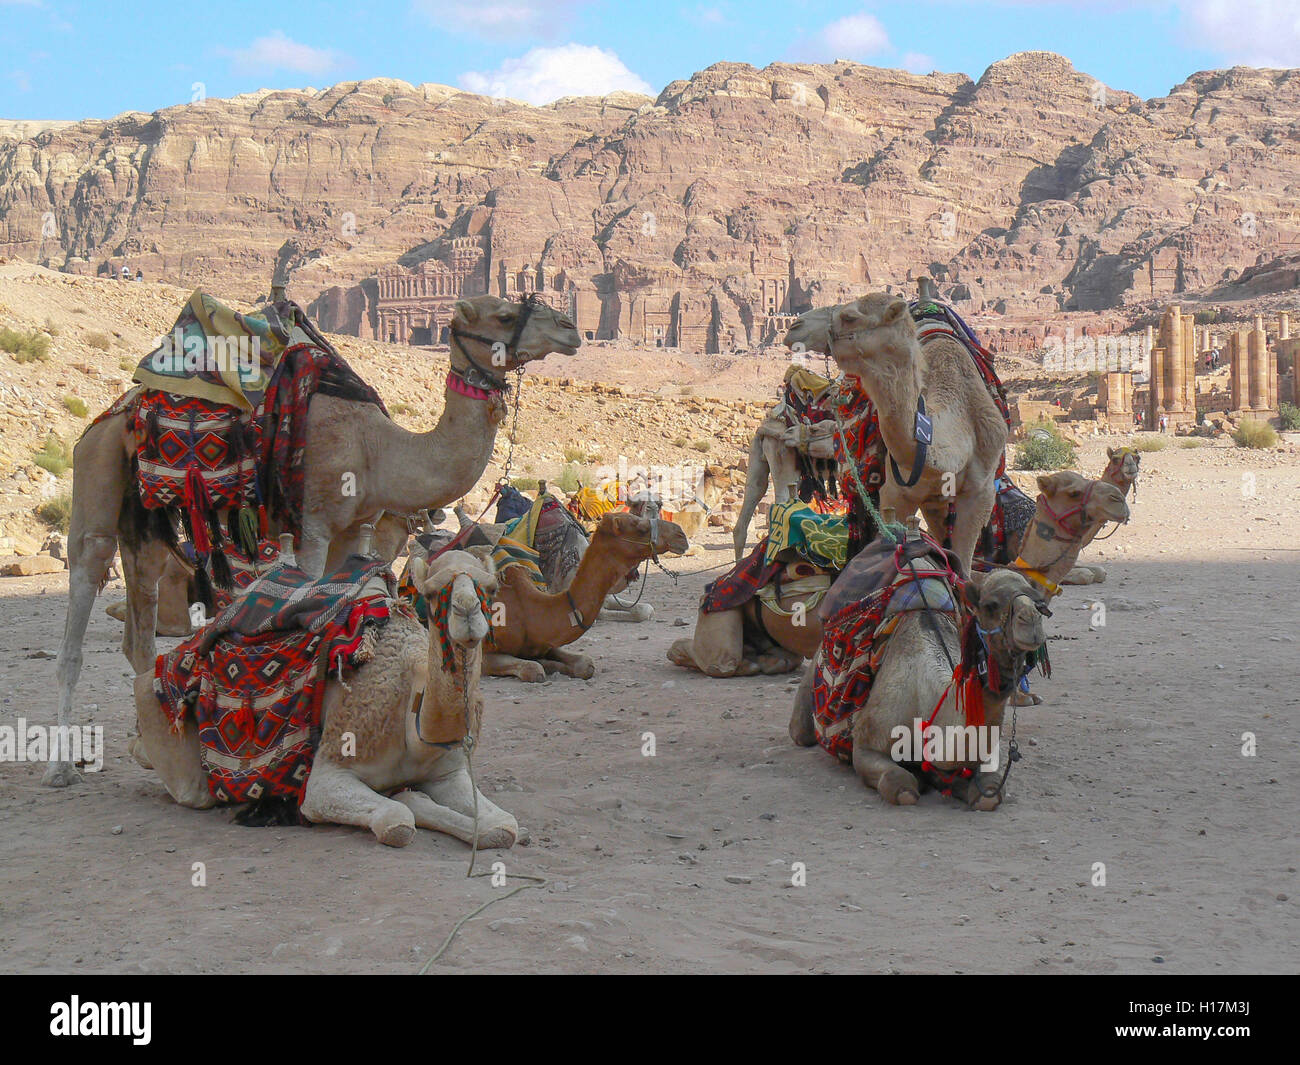 Camels waiting for tourists, Petra in Jordan Stock Photo